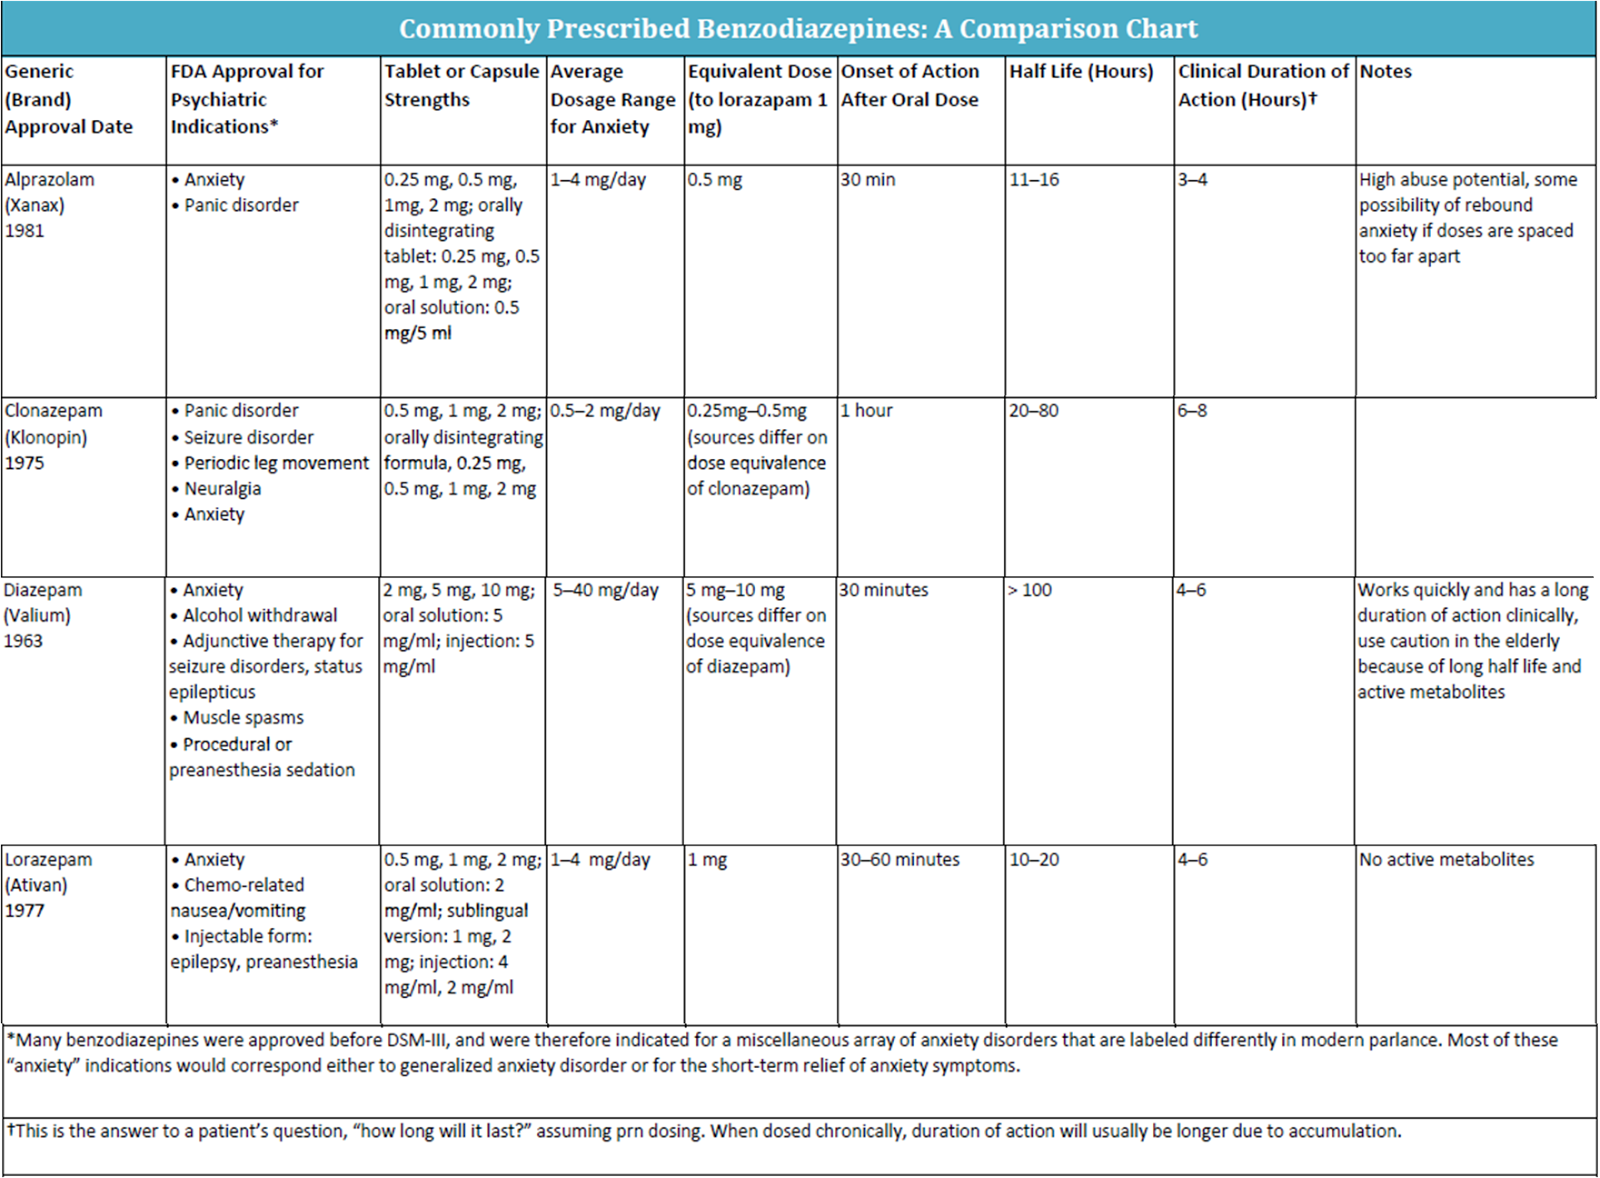 Ask dis benzodiazepine comparison chart references nvjuhfo Choice Image